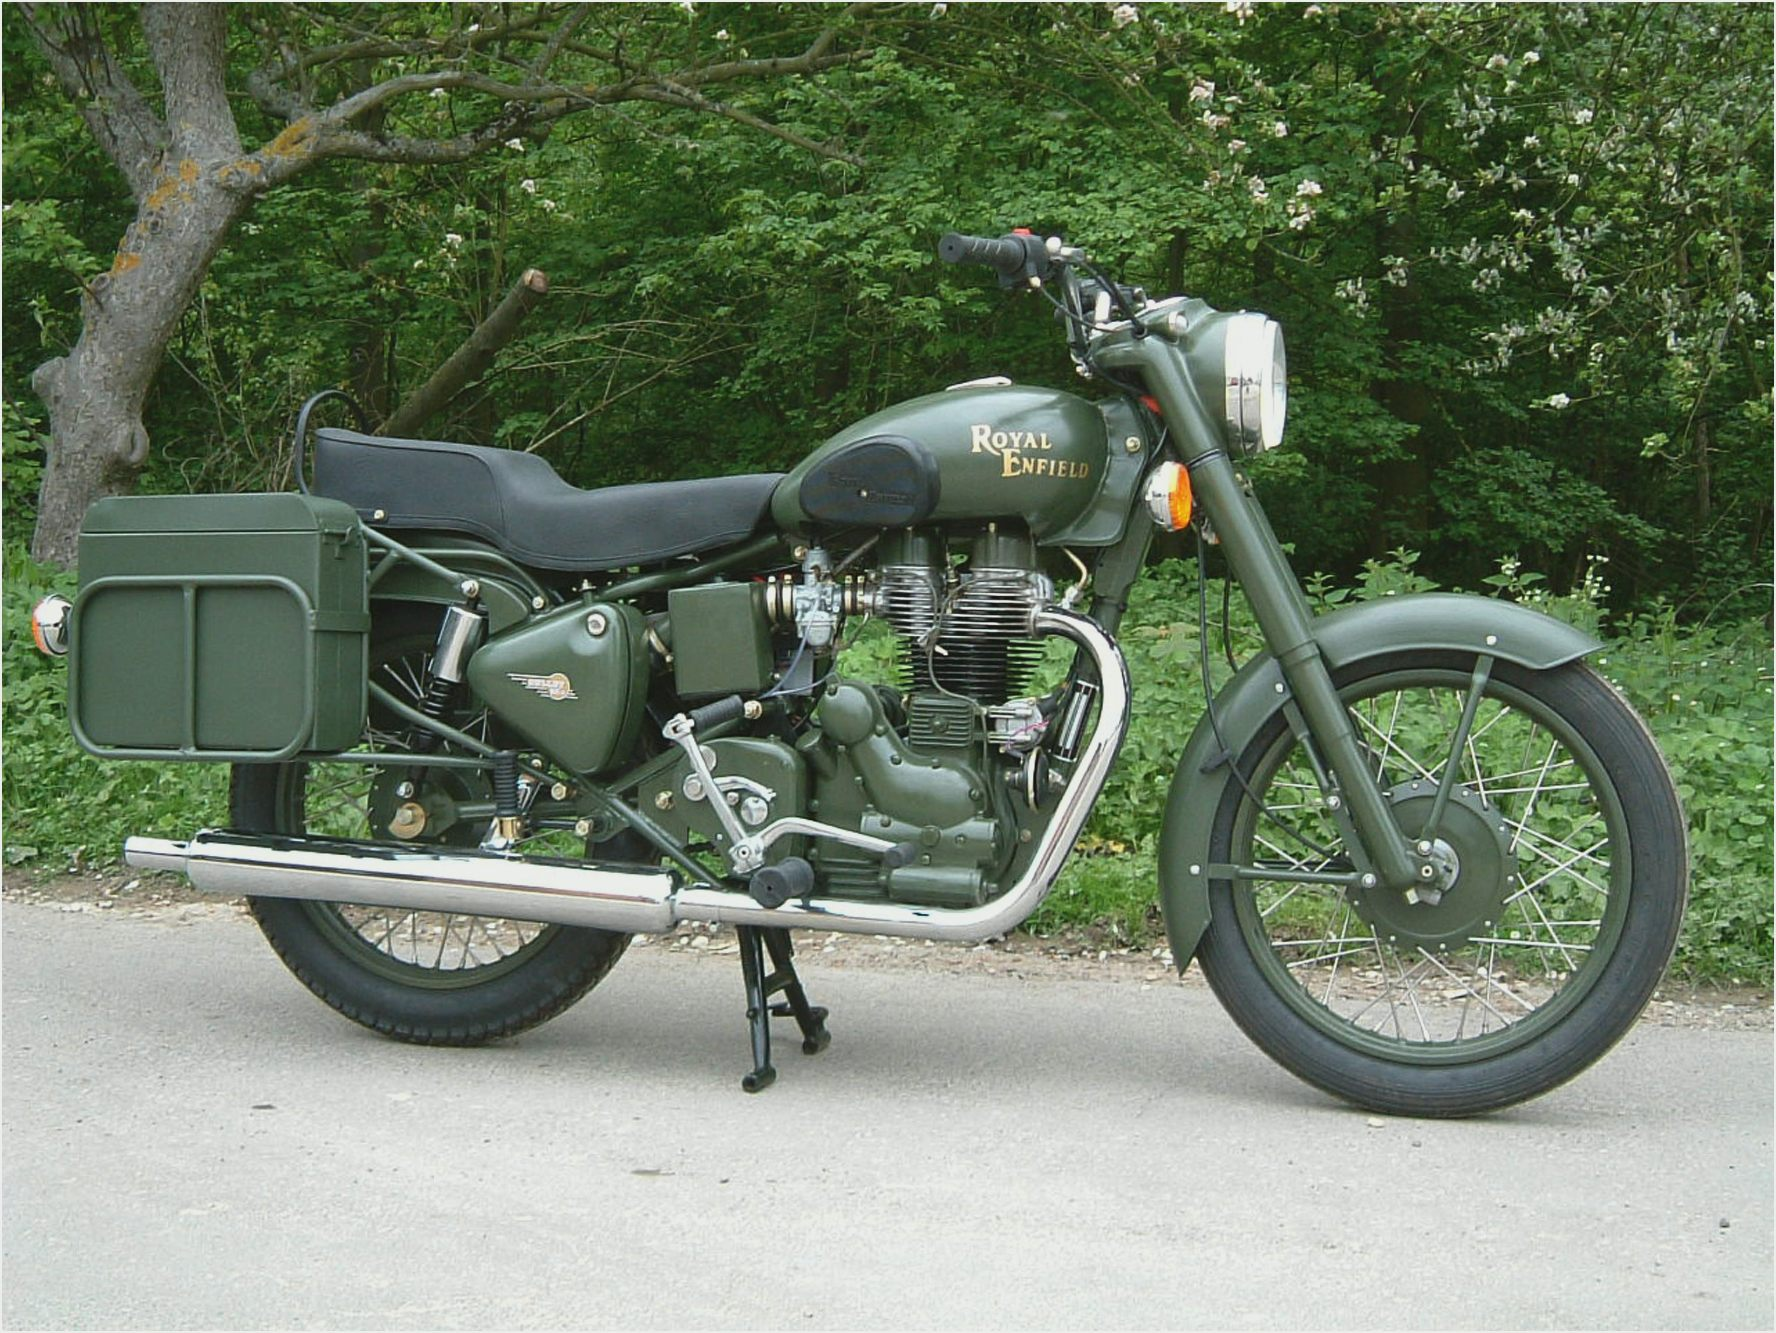 Royal Enfield Bullet 350 Army 2002 images #123577